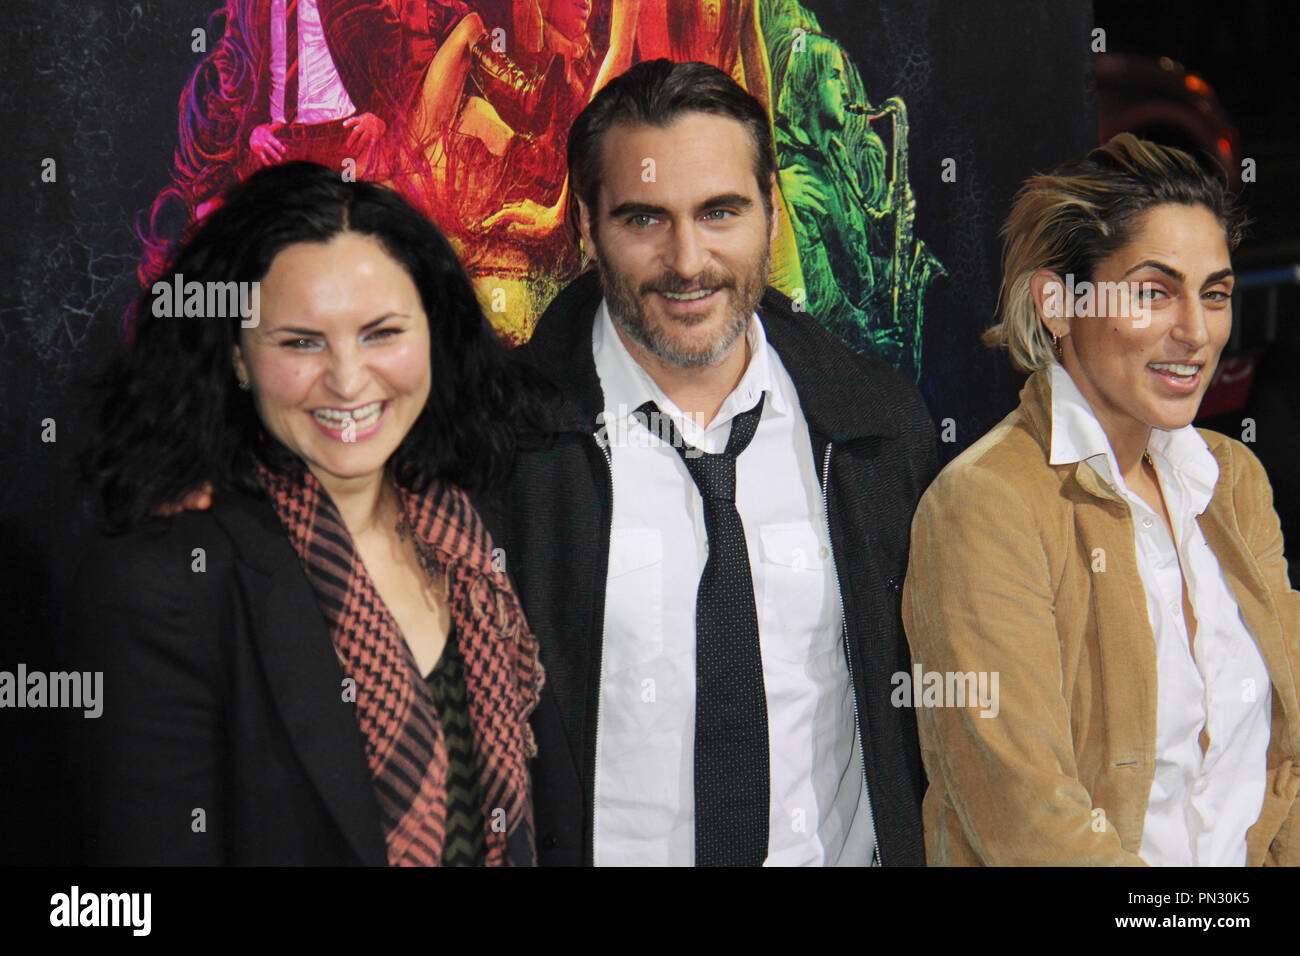 Rain Phoenix, Joaquin Phoenix, Summer Phoenix  12/10/2014 'Inherent Vice' Premiere held at TCL Chinese Theater in Hollywood, CA Photo by Izumi Hasegawa / HNW / PictureLux - Stock Image